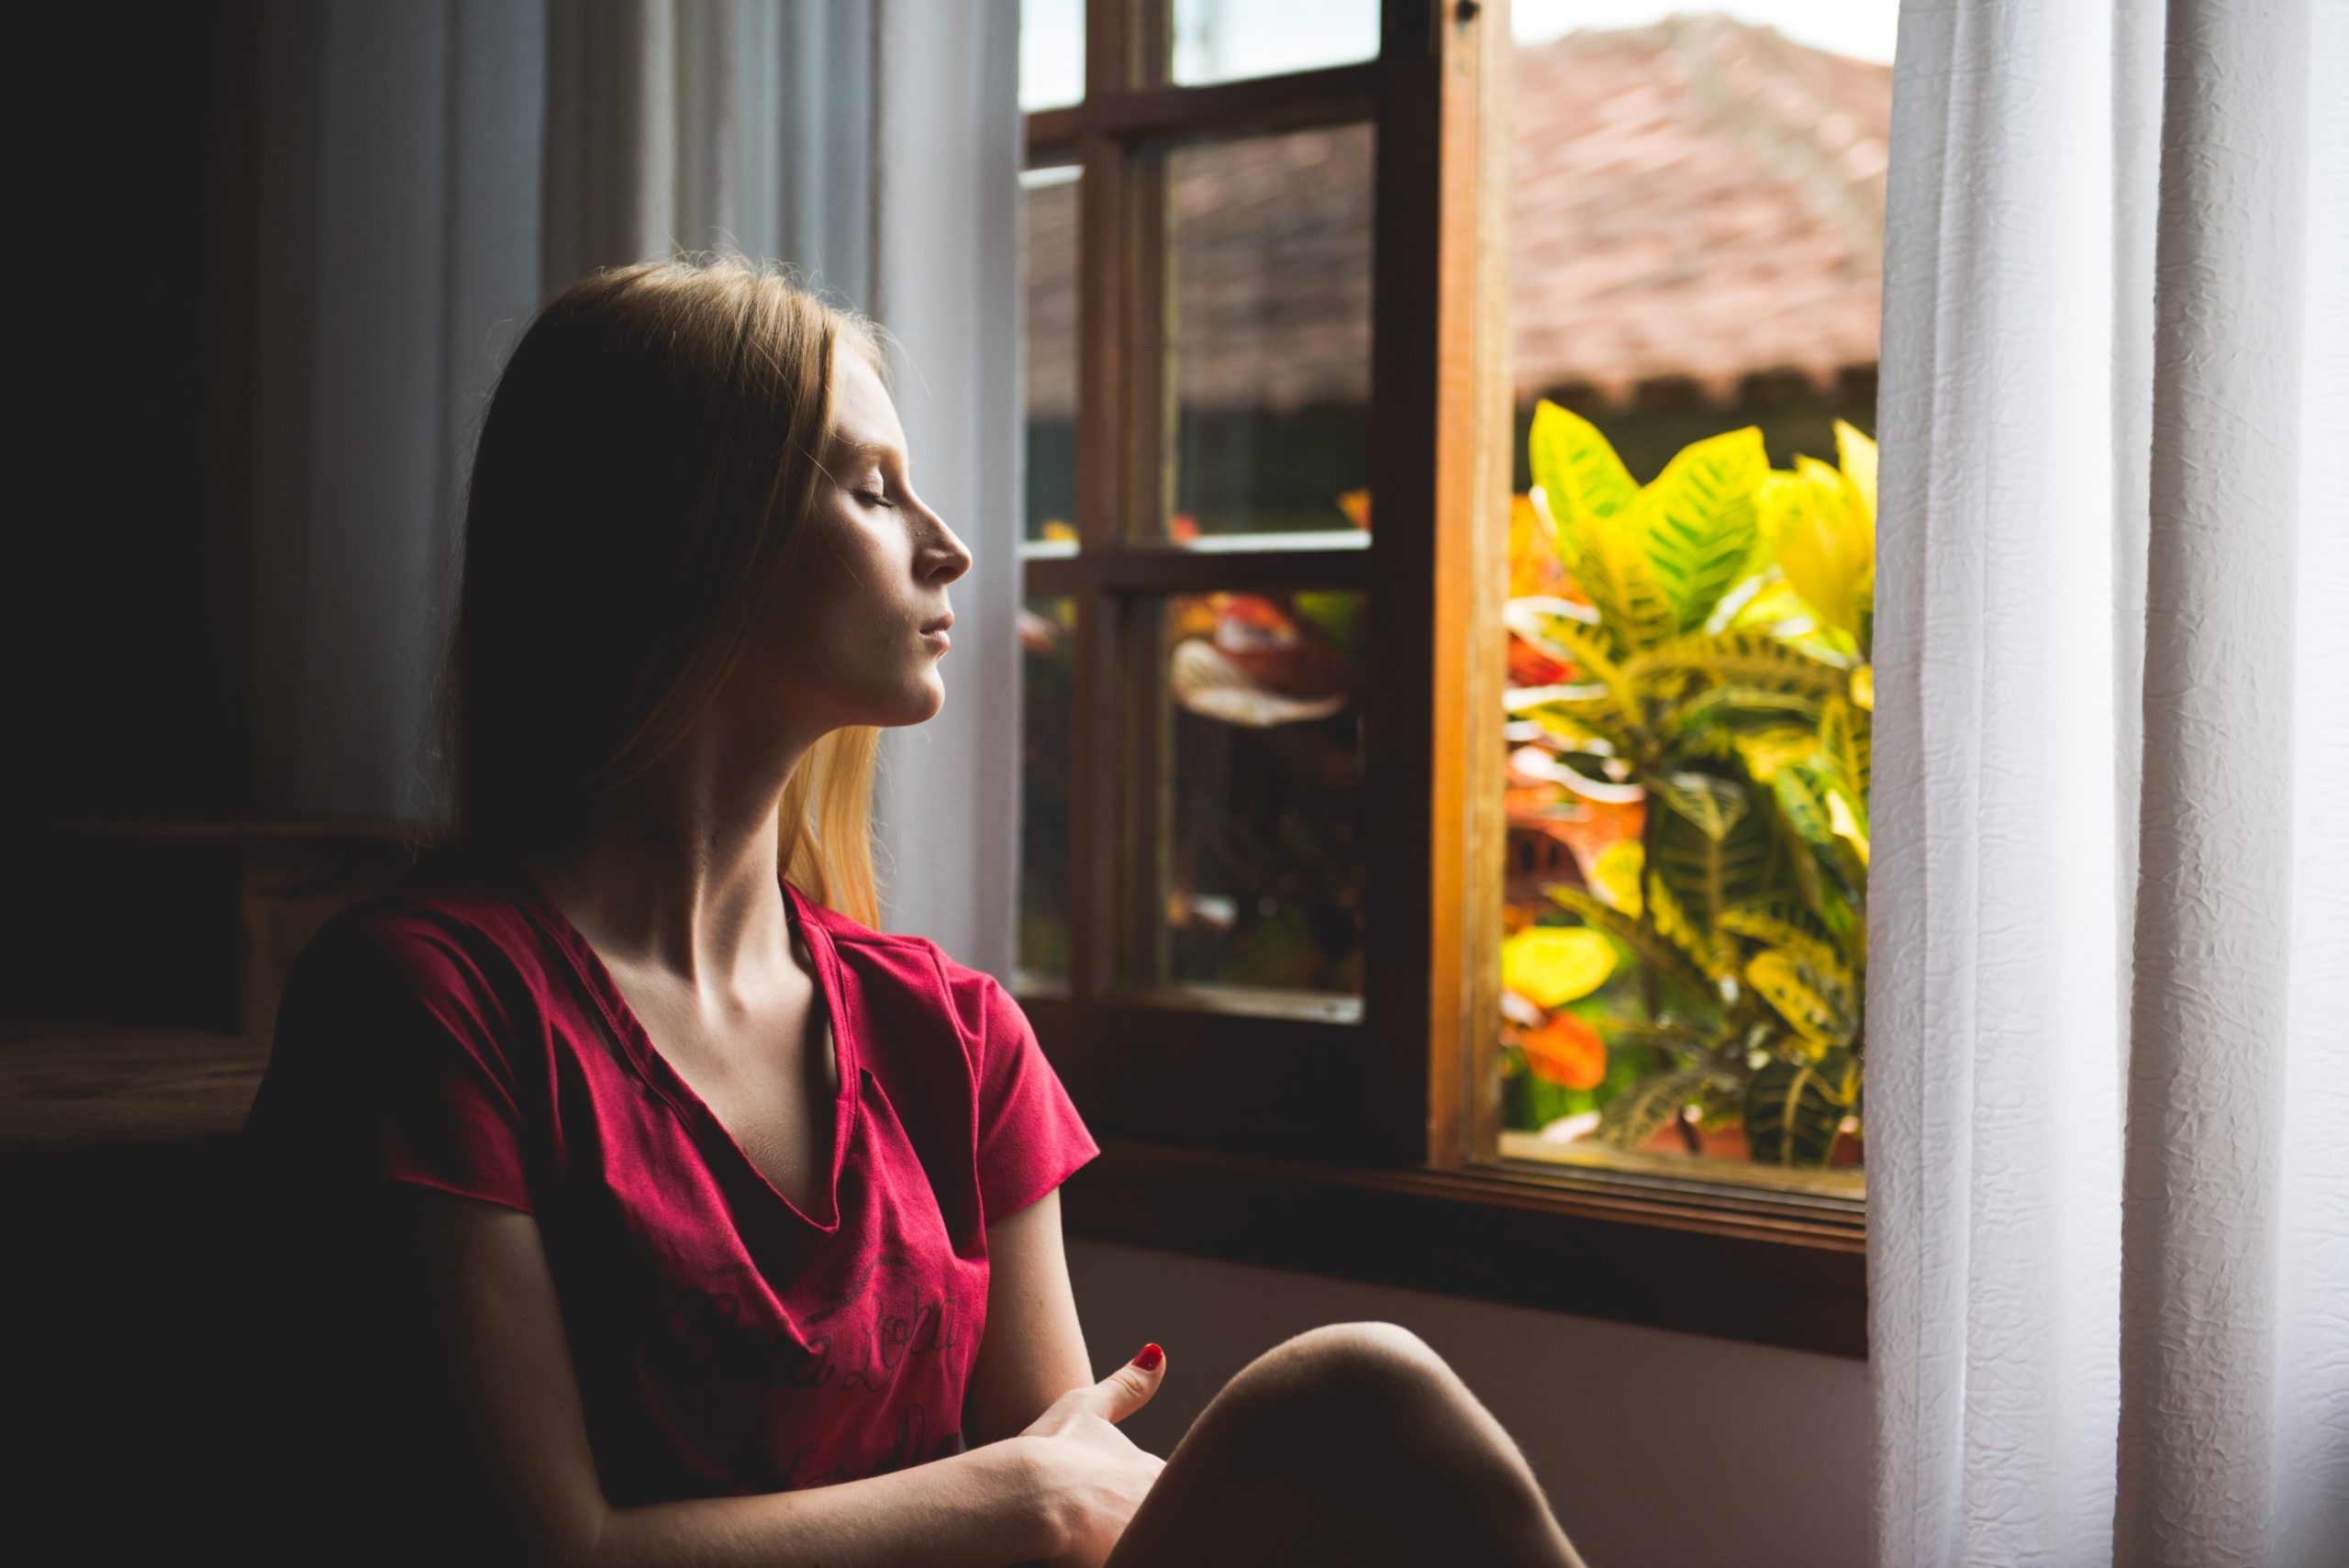 Woman sitting calmly with eyes shut near open window